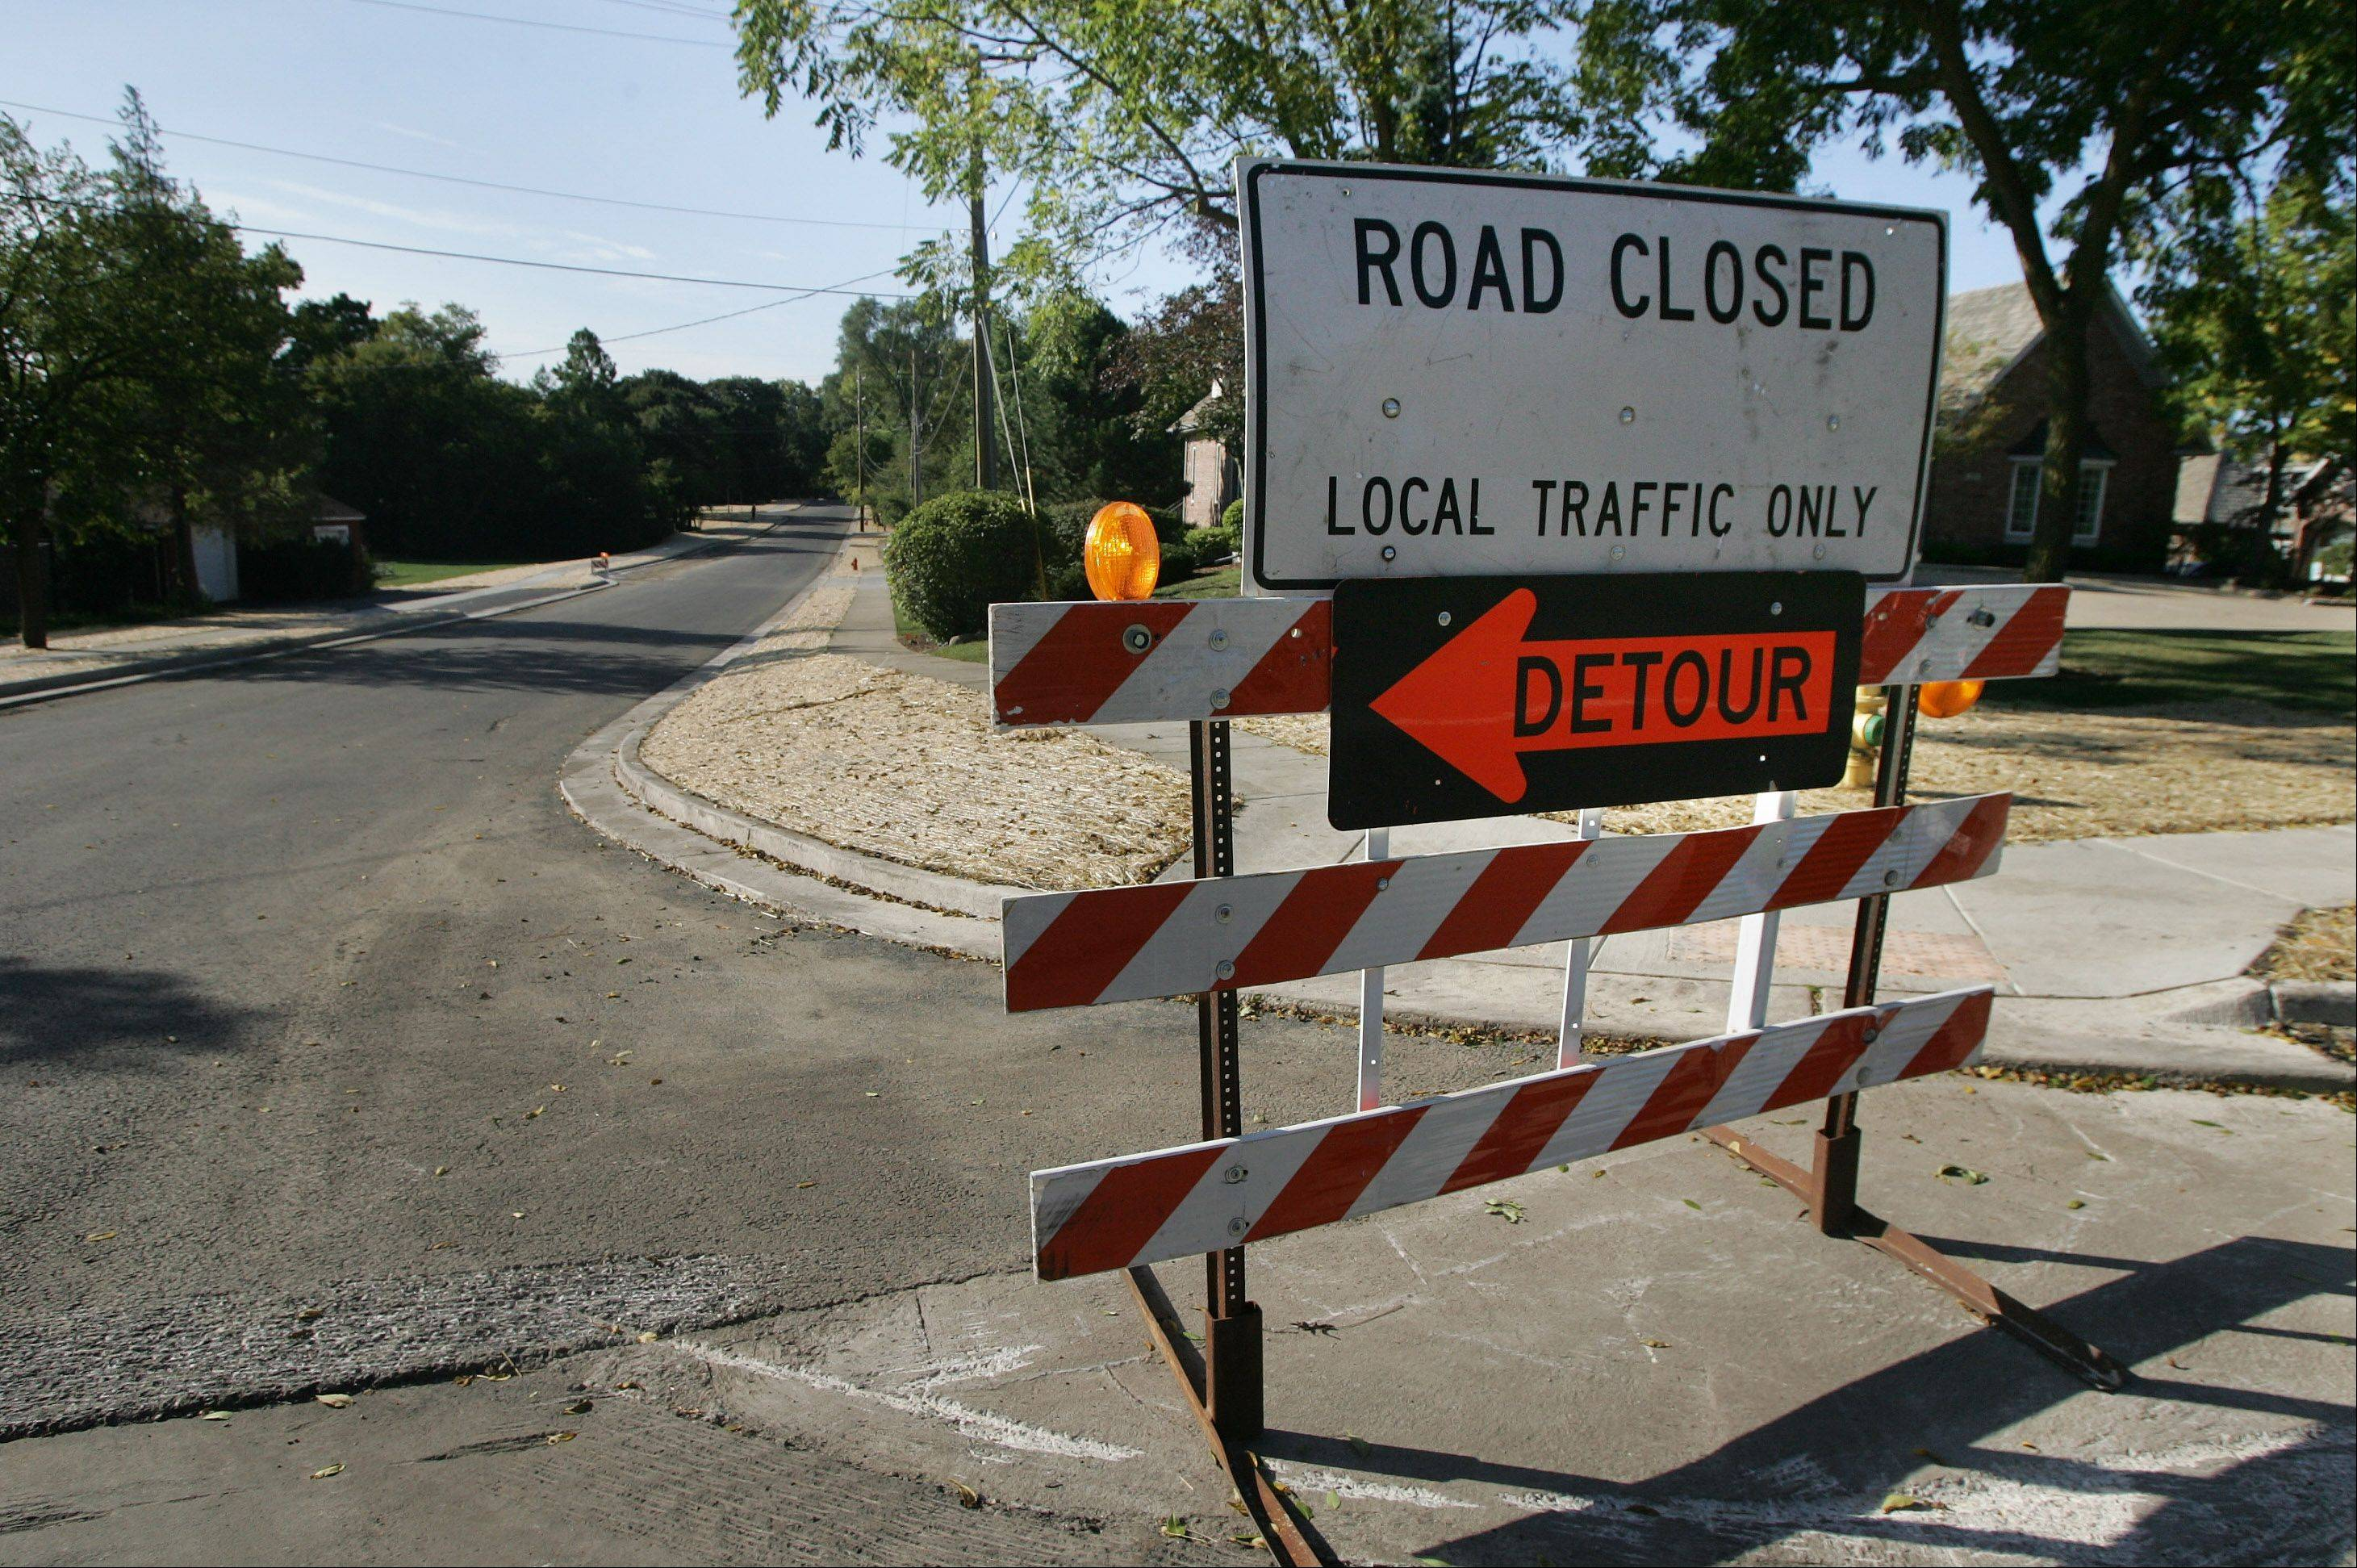 Most of Libertyville's budget for street repairs this year involved a single project -- the reconstruction of about a half-mile of Dymond Road between Route 176 and Crane Boulevard.